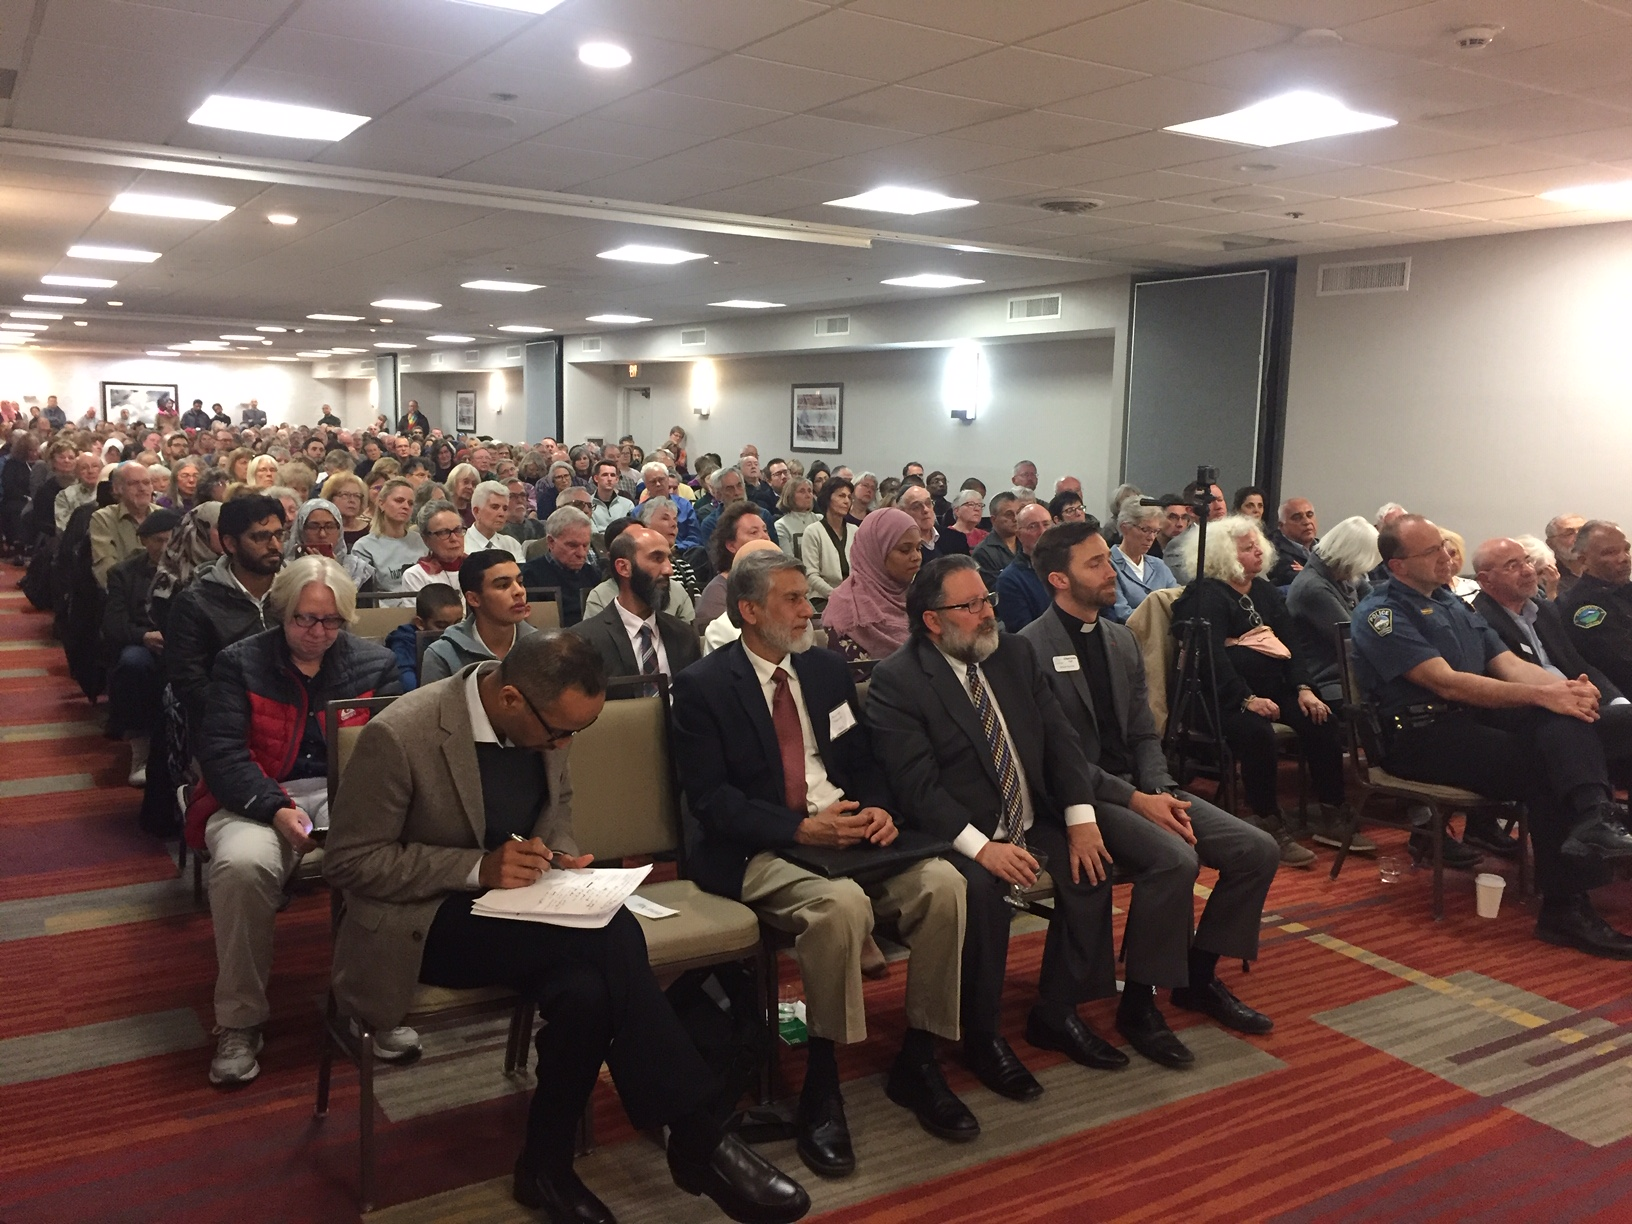 The crowded room at Thursday night's interfaith vigil organized by the Islamic Society of Colorado Springs